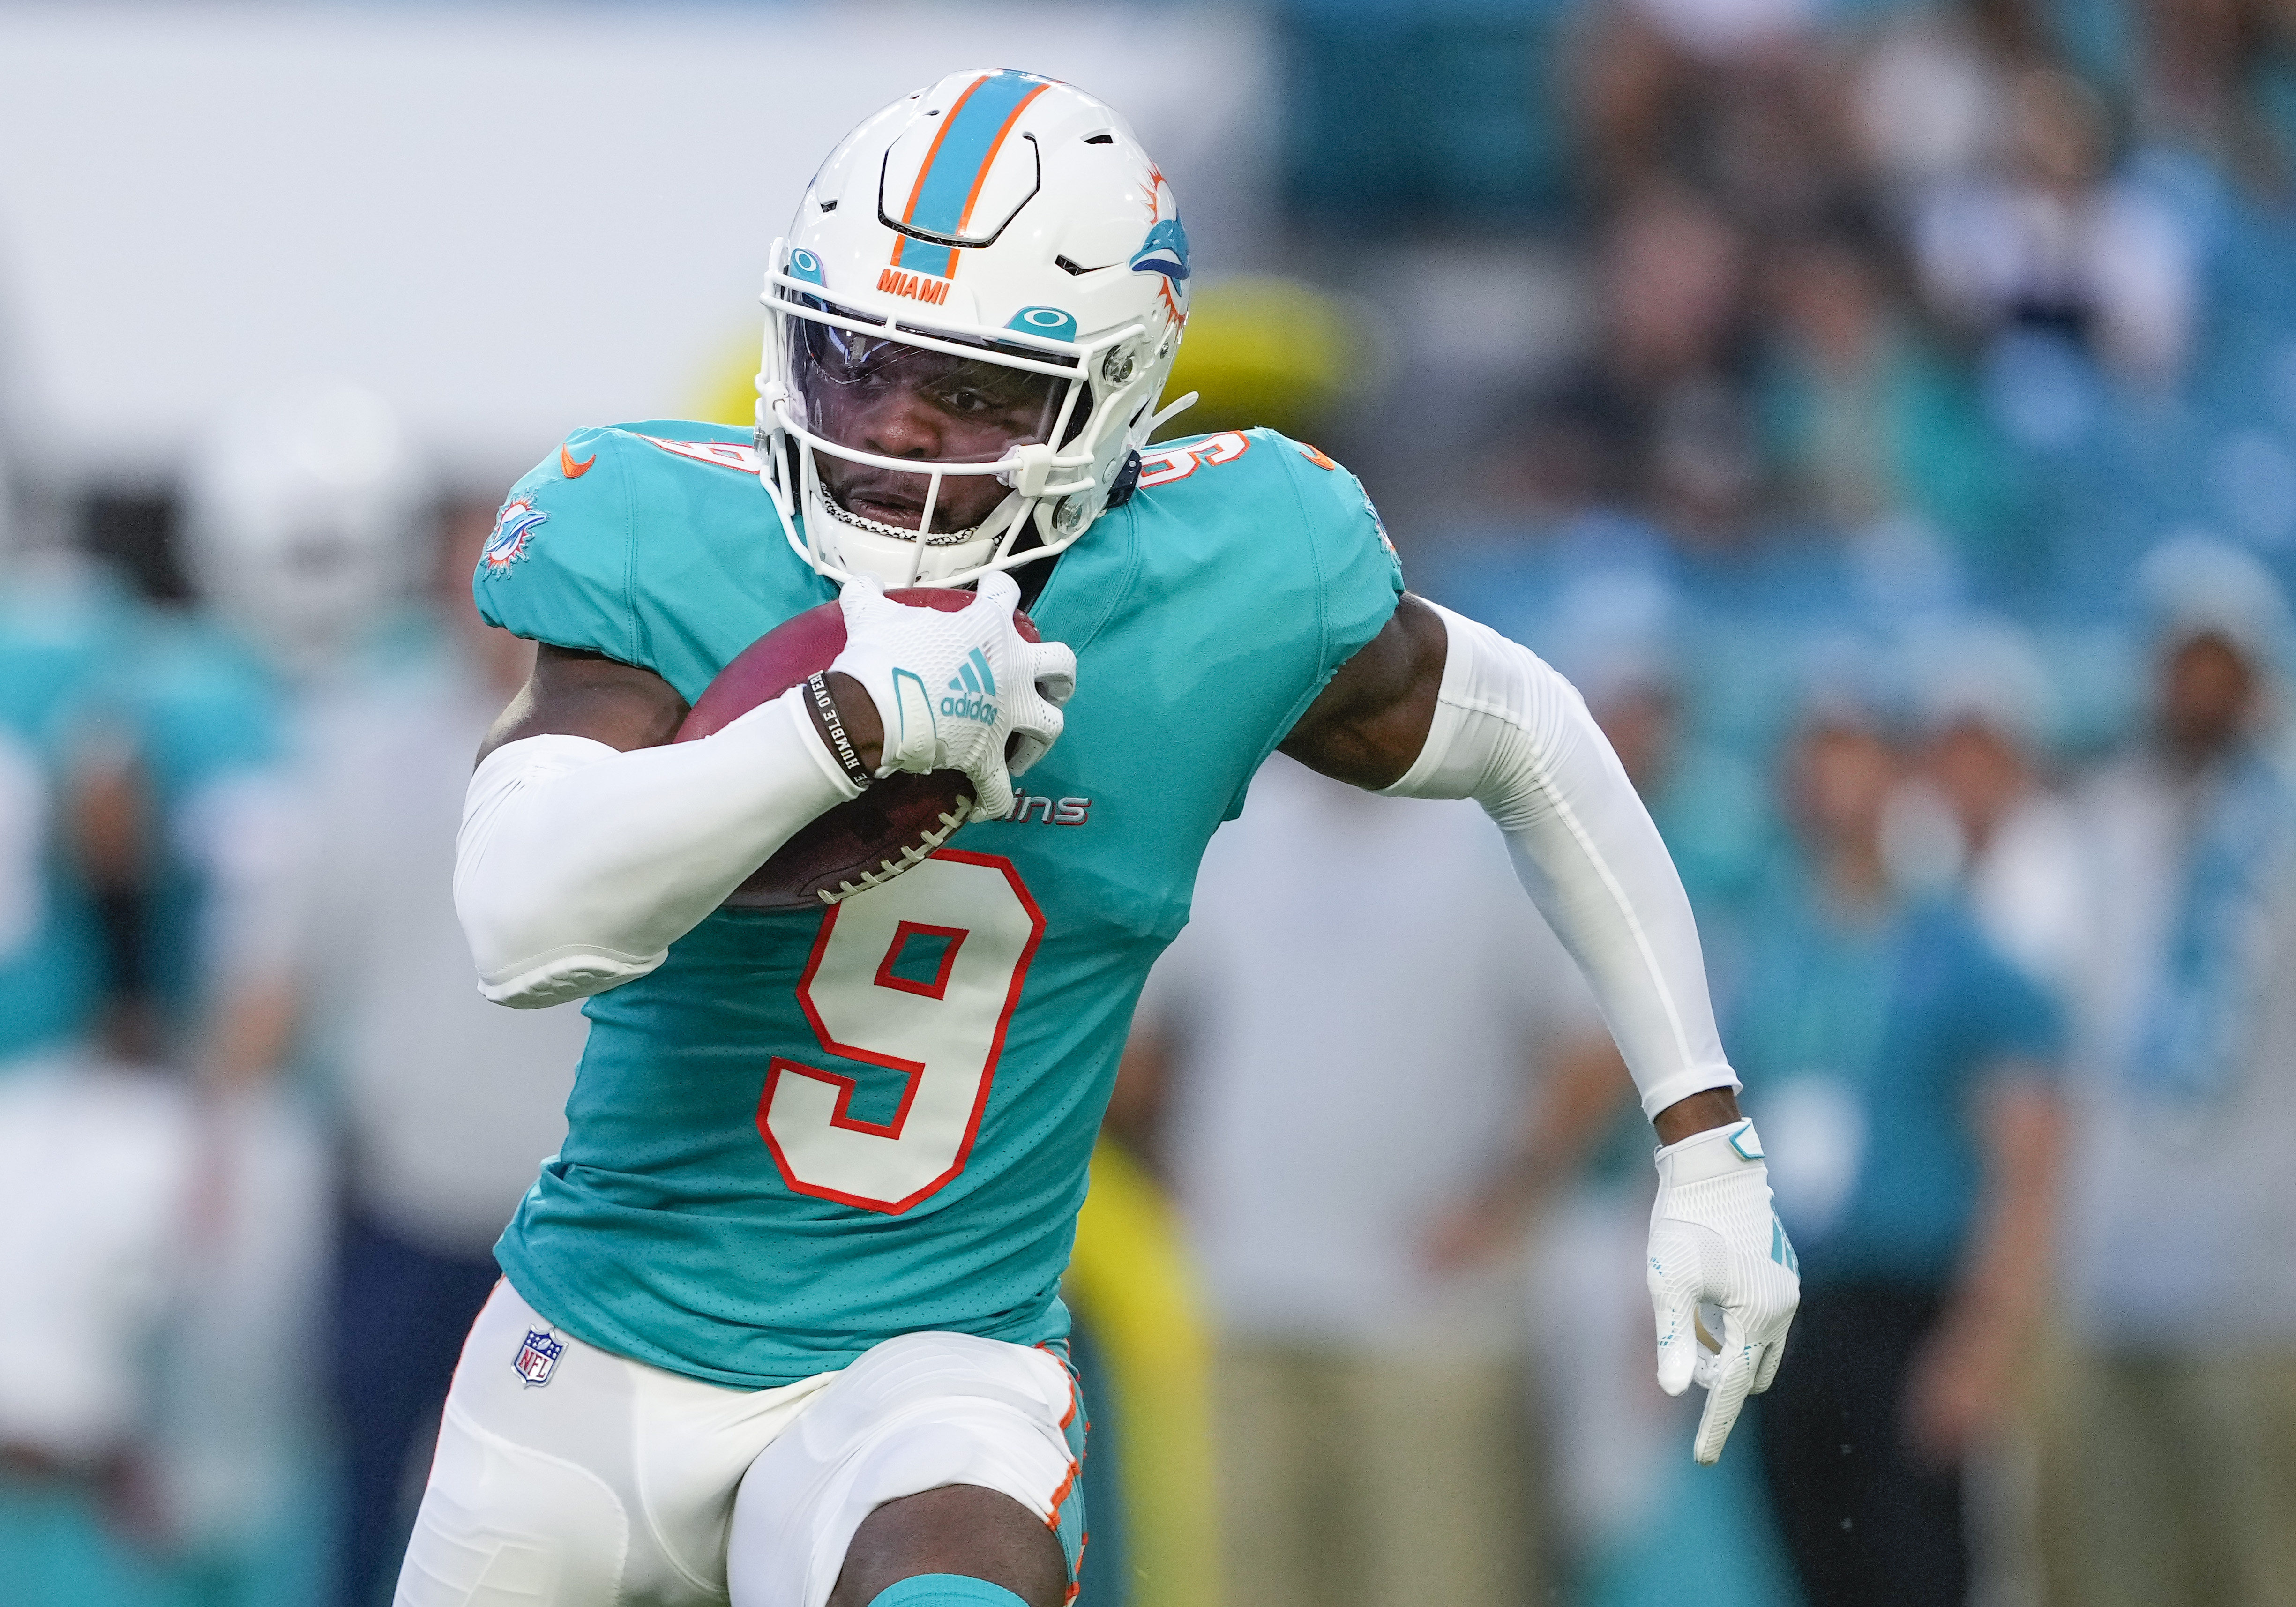 Miami Dolphins cornerback Noah Igbinoghene (9) runs with the ball for a first down during the NFL Football match between the Miami Dolphins and Atlanta Falcons on August 21, 2021 at Hard Rock Stadium in Miami, FL.